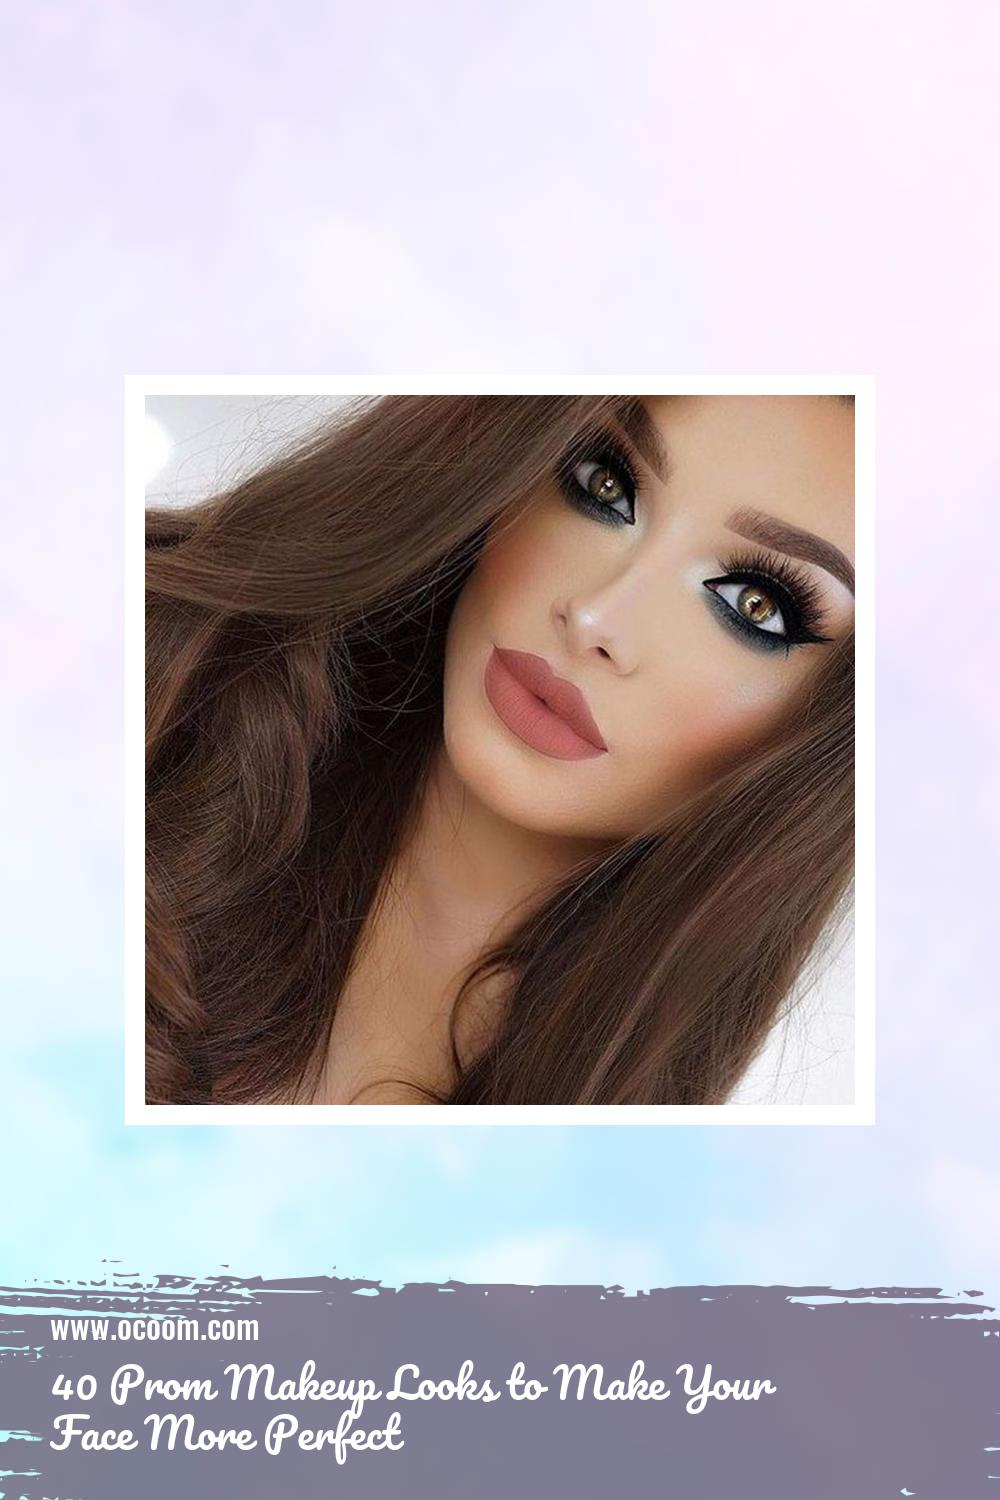 40 Prom Makeup Looks to Make Your Face More Perfect 37